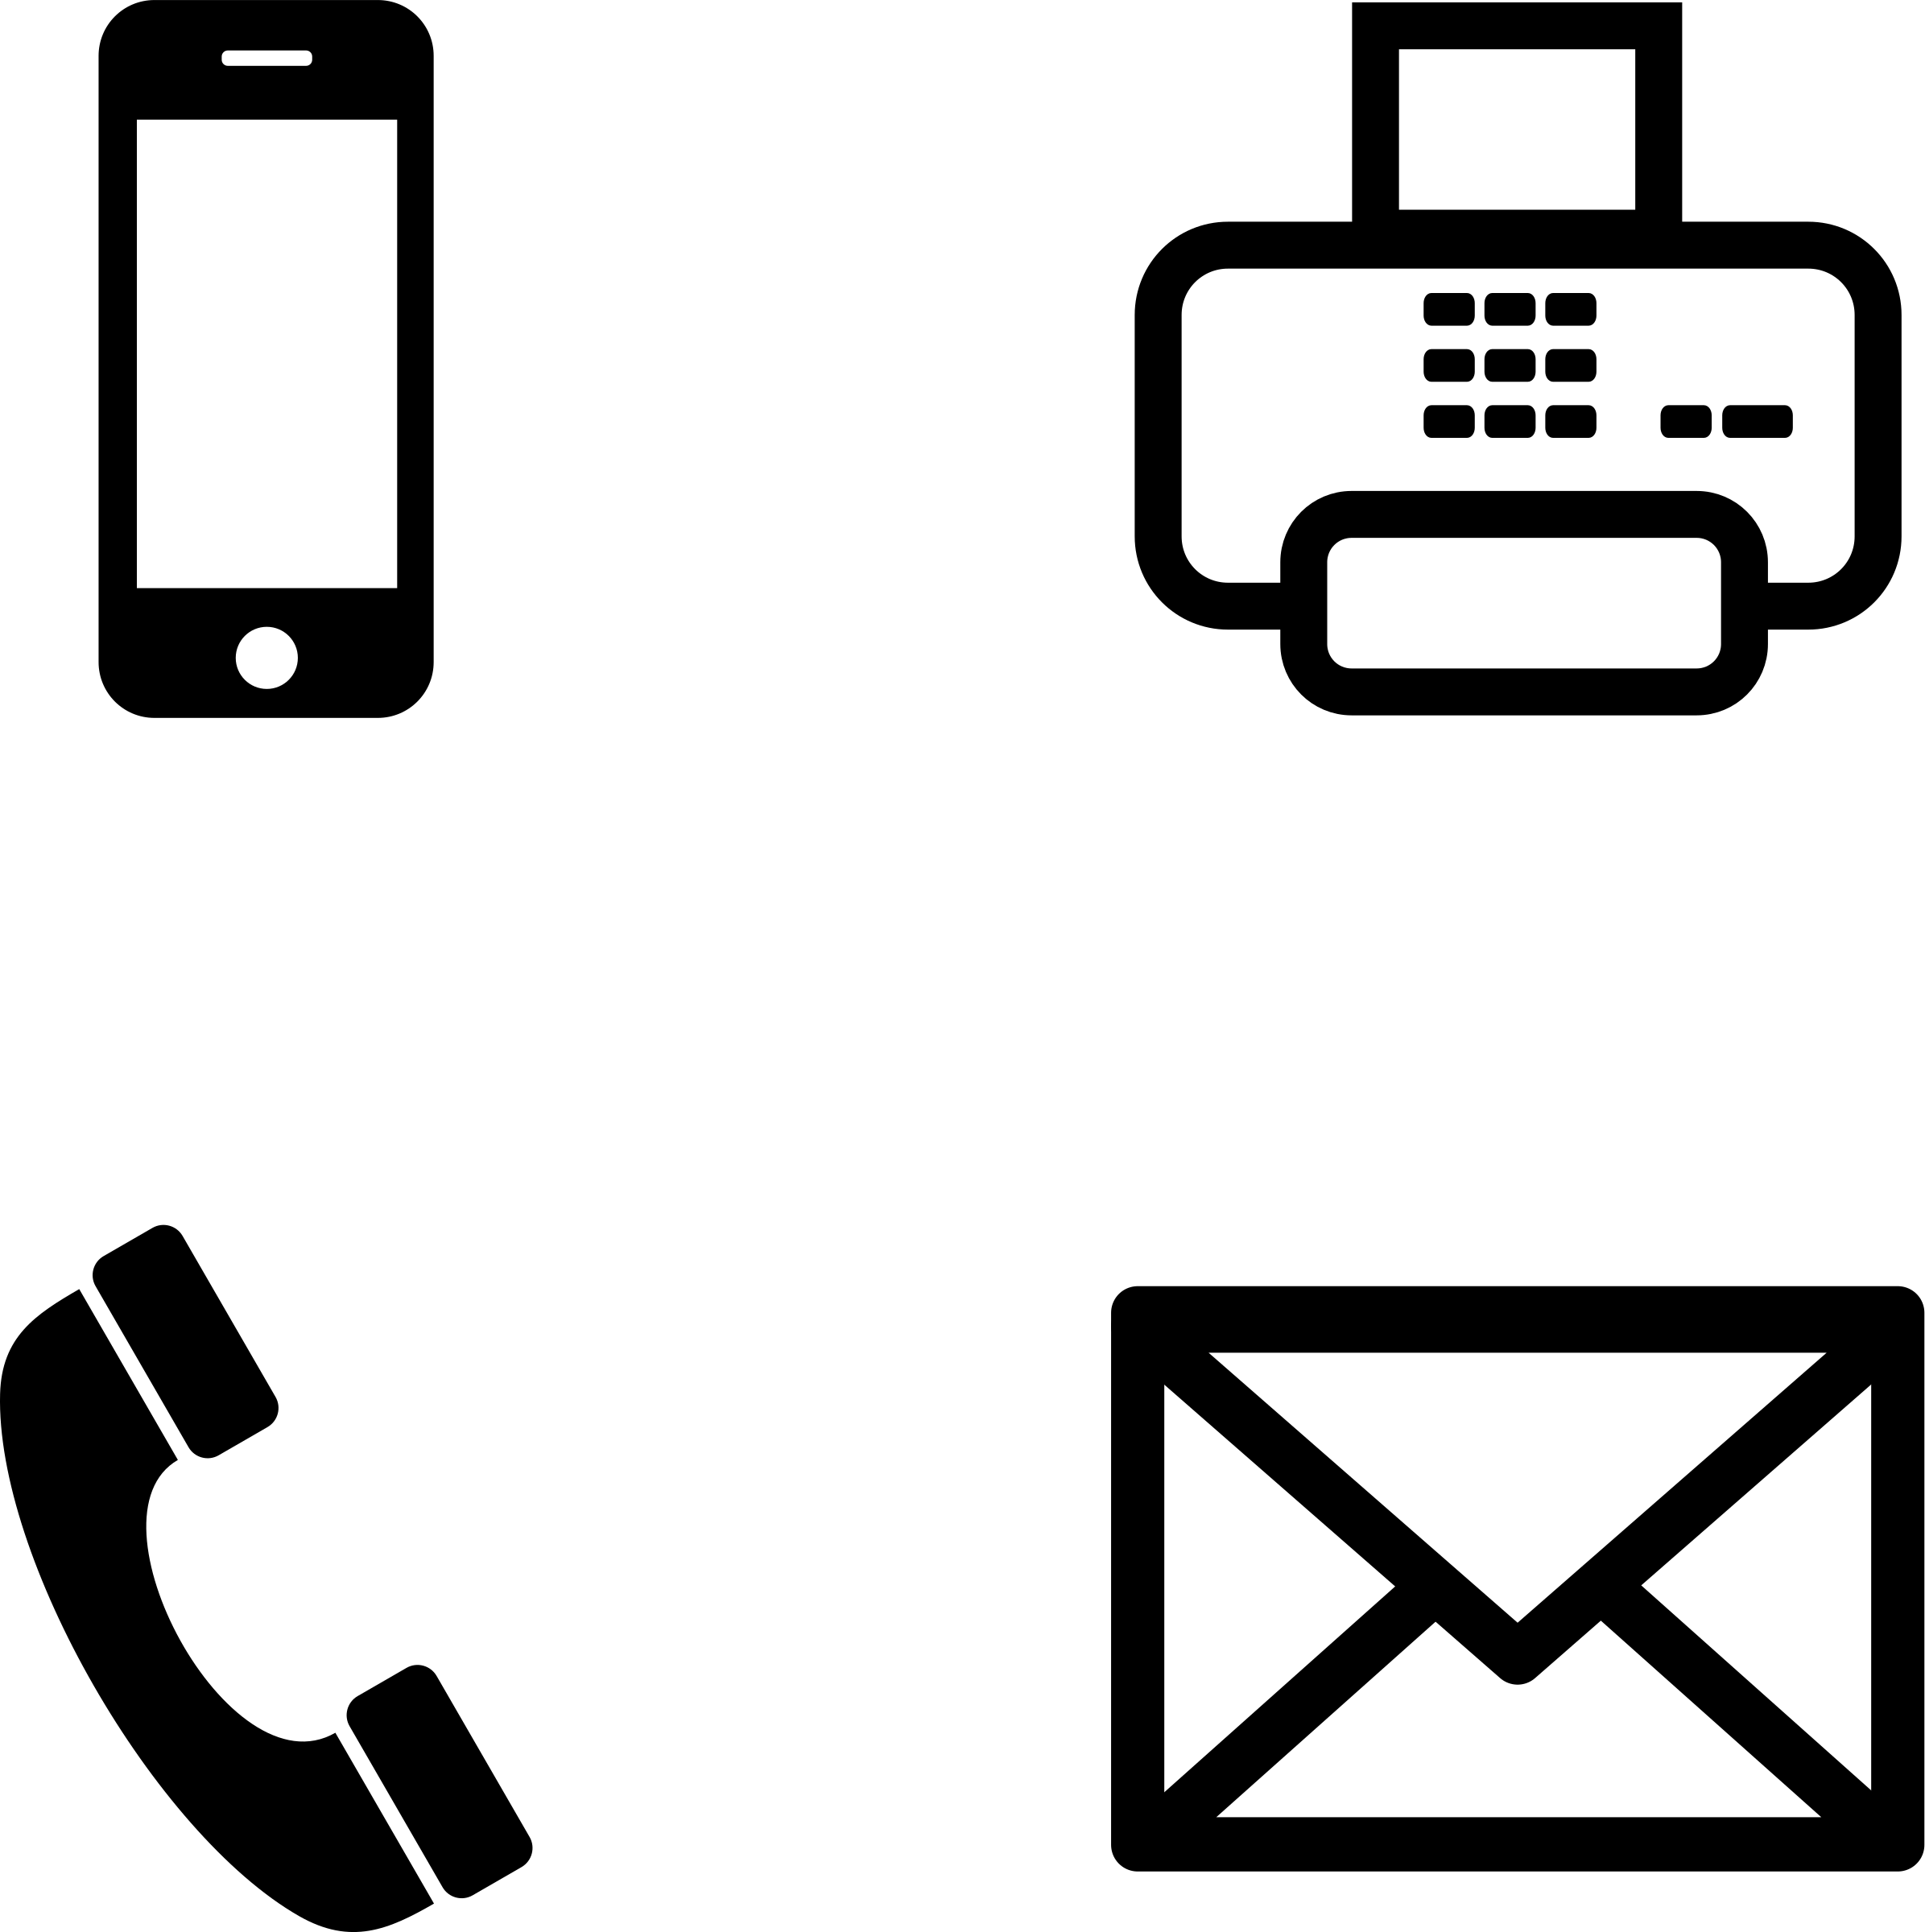 Icons for email signature clipart images gallery for free.